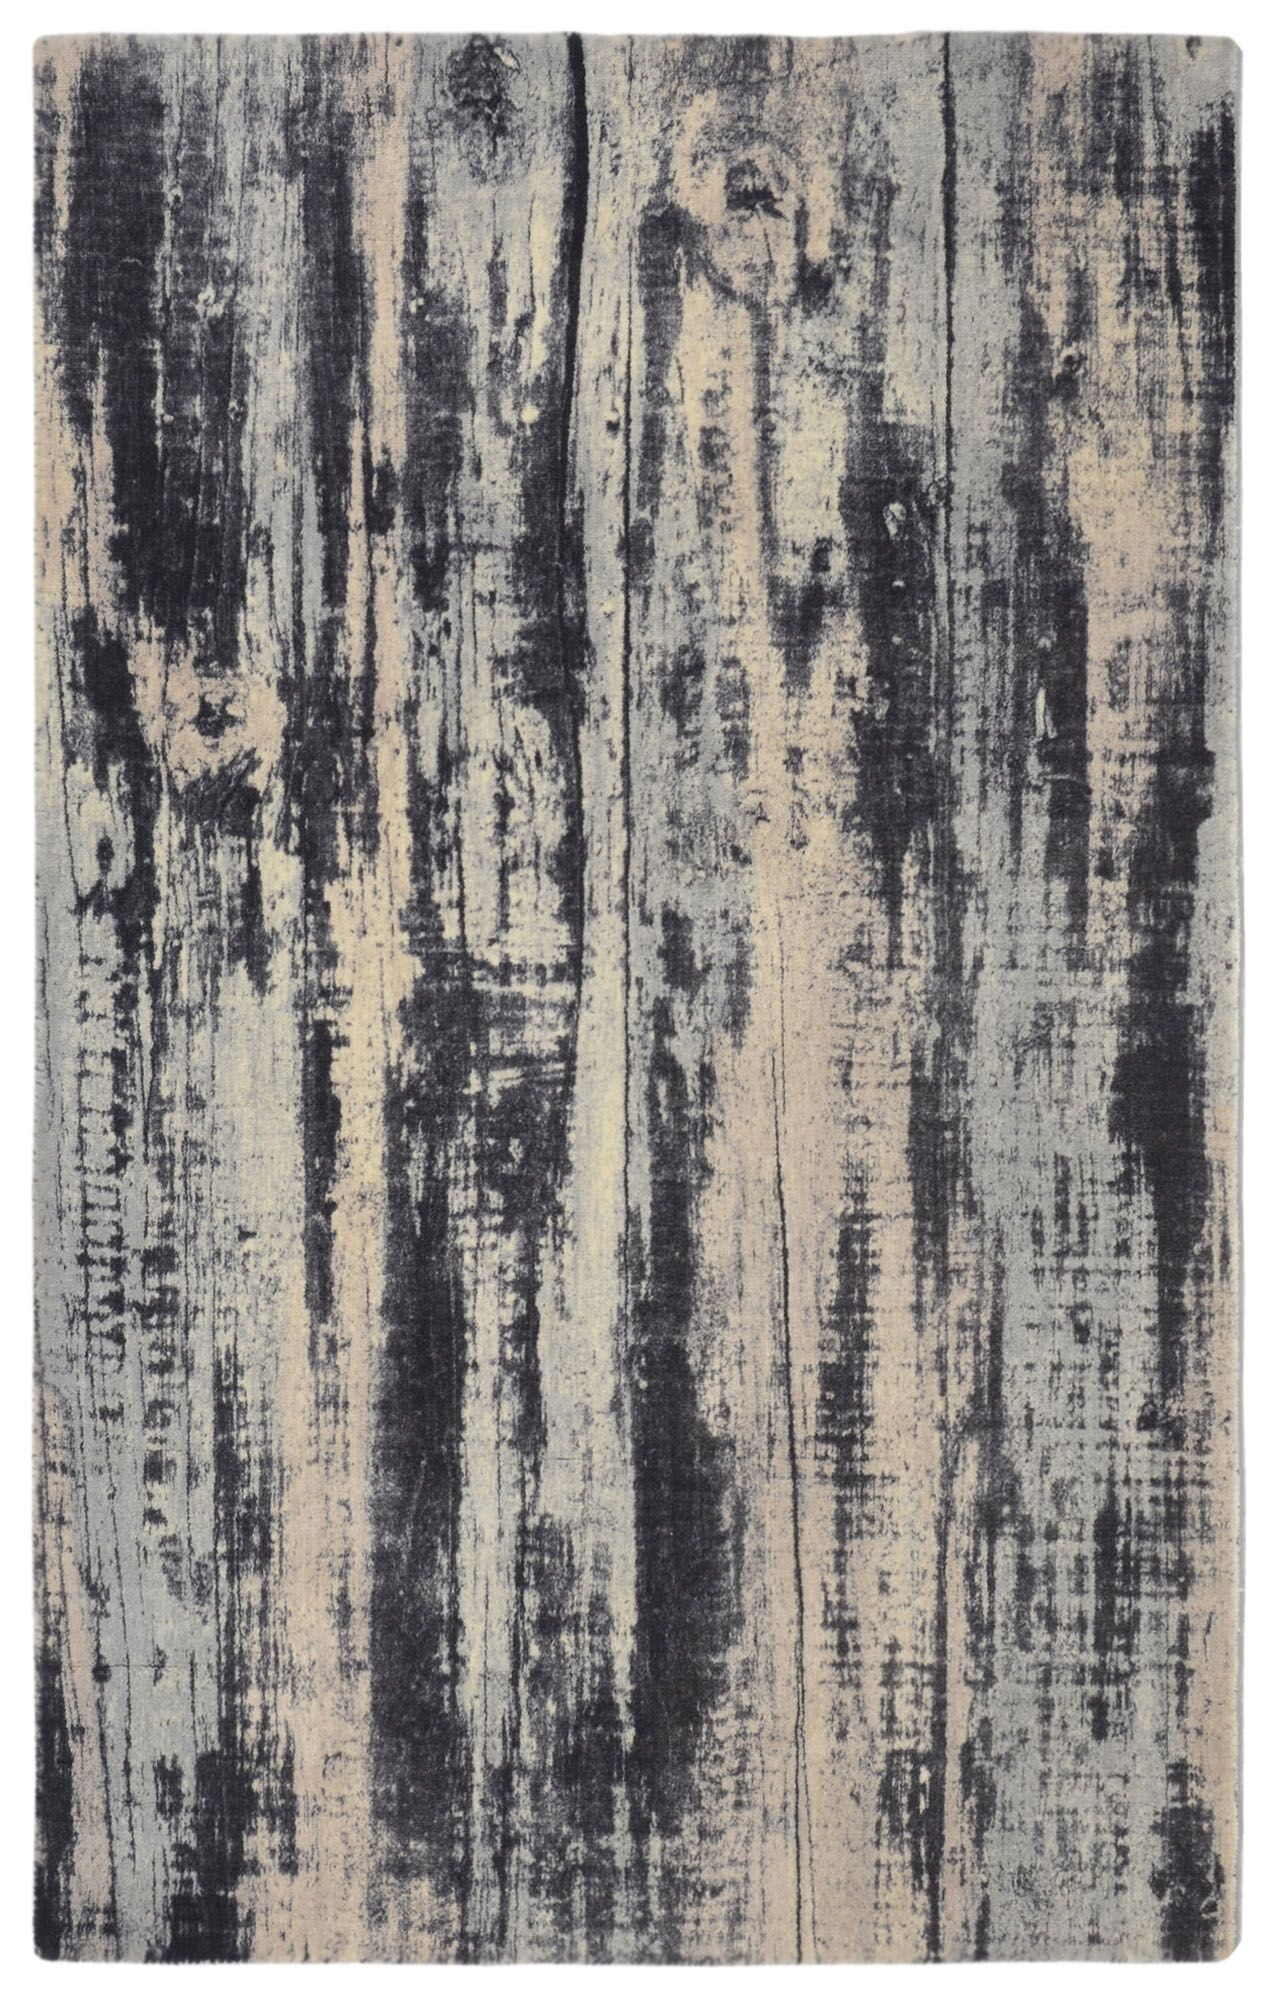 Labombard Contemporary Modern Gray/Beige Area Rug Rug Size: Rectangle 5' x 7'